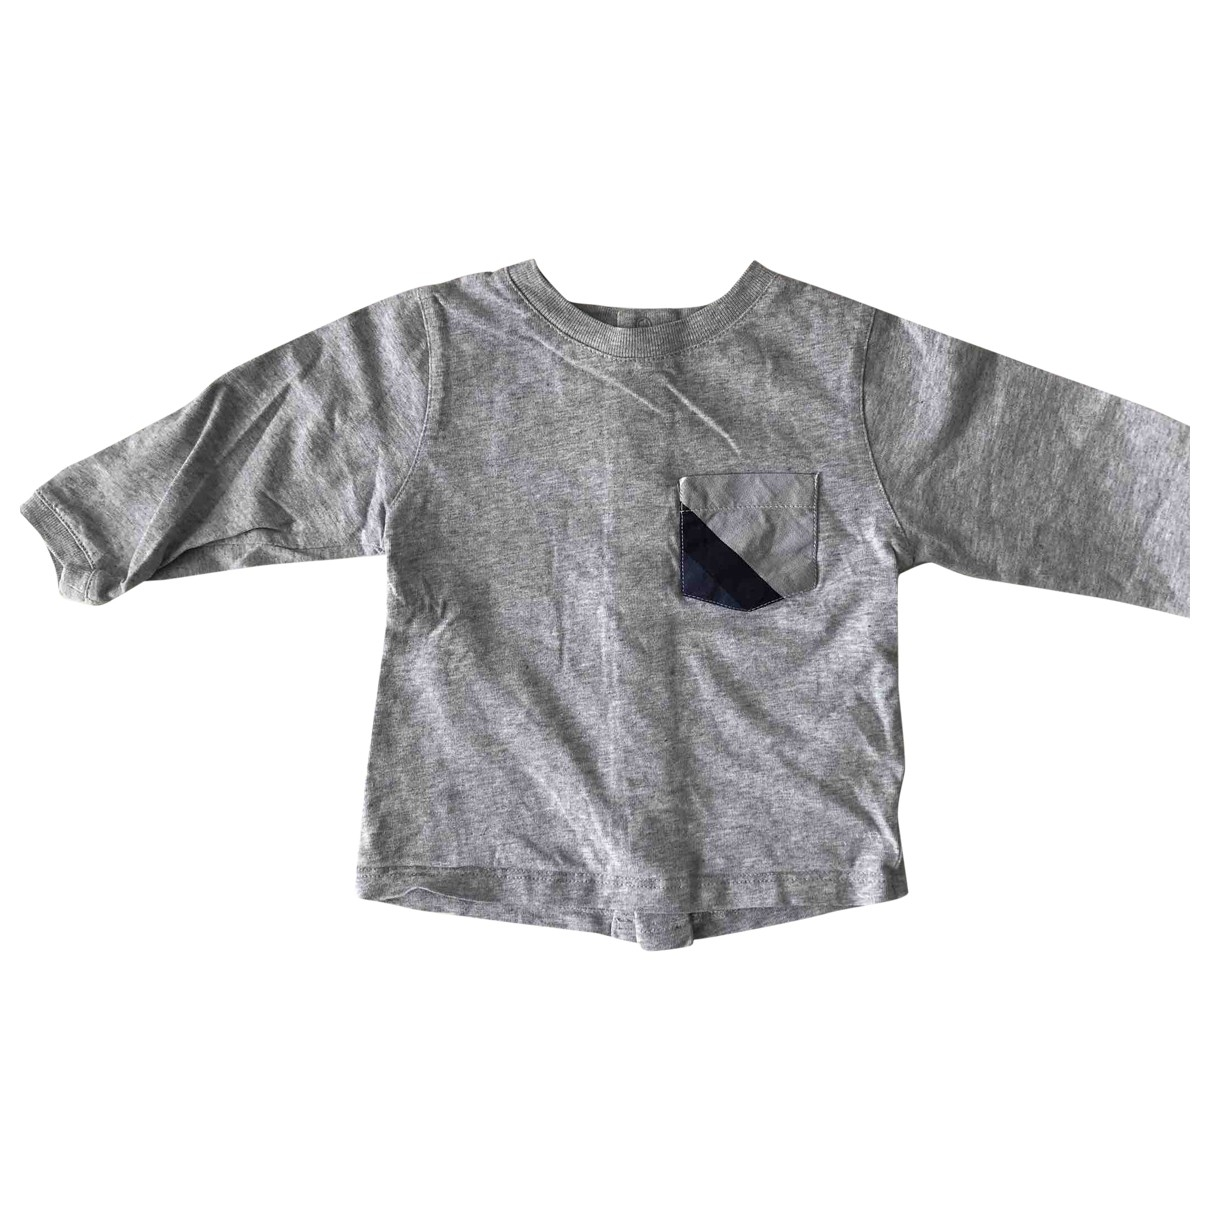 Burberry \N Grey Cotton  top for Kids 9 months - until 28 inches UK